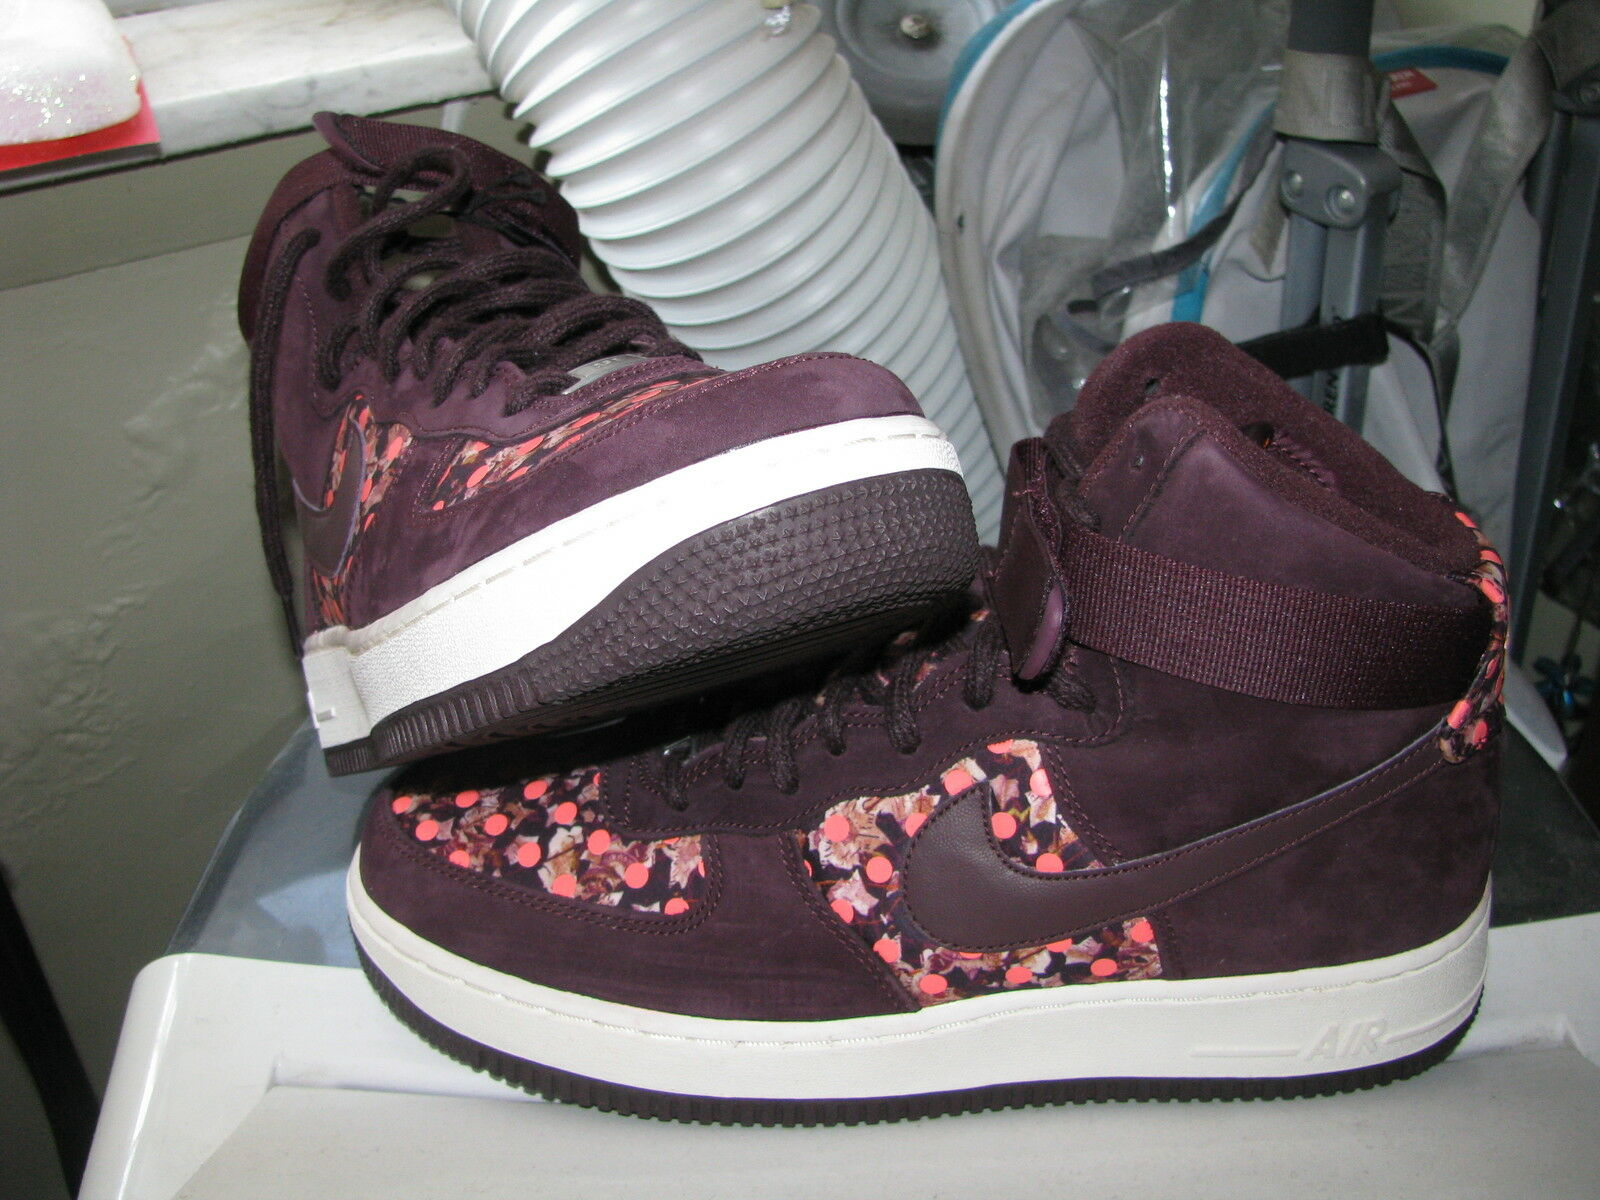 NIKE AIR FORCE 1 HI LIB QS Womens LIBERTY OF LONDON Doernbecher Burgundy Sz 11